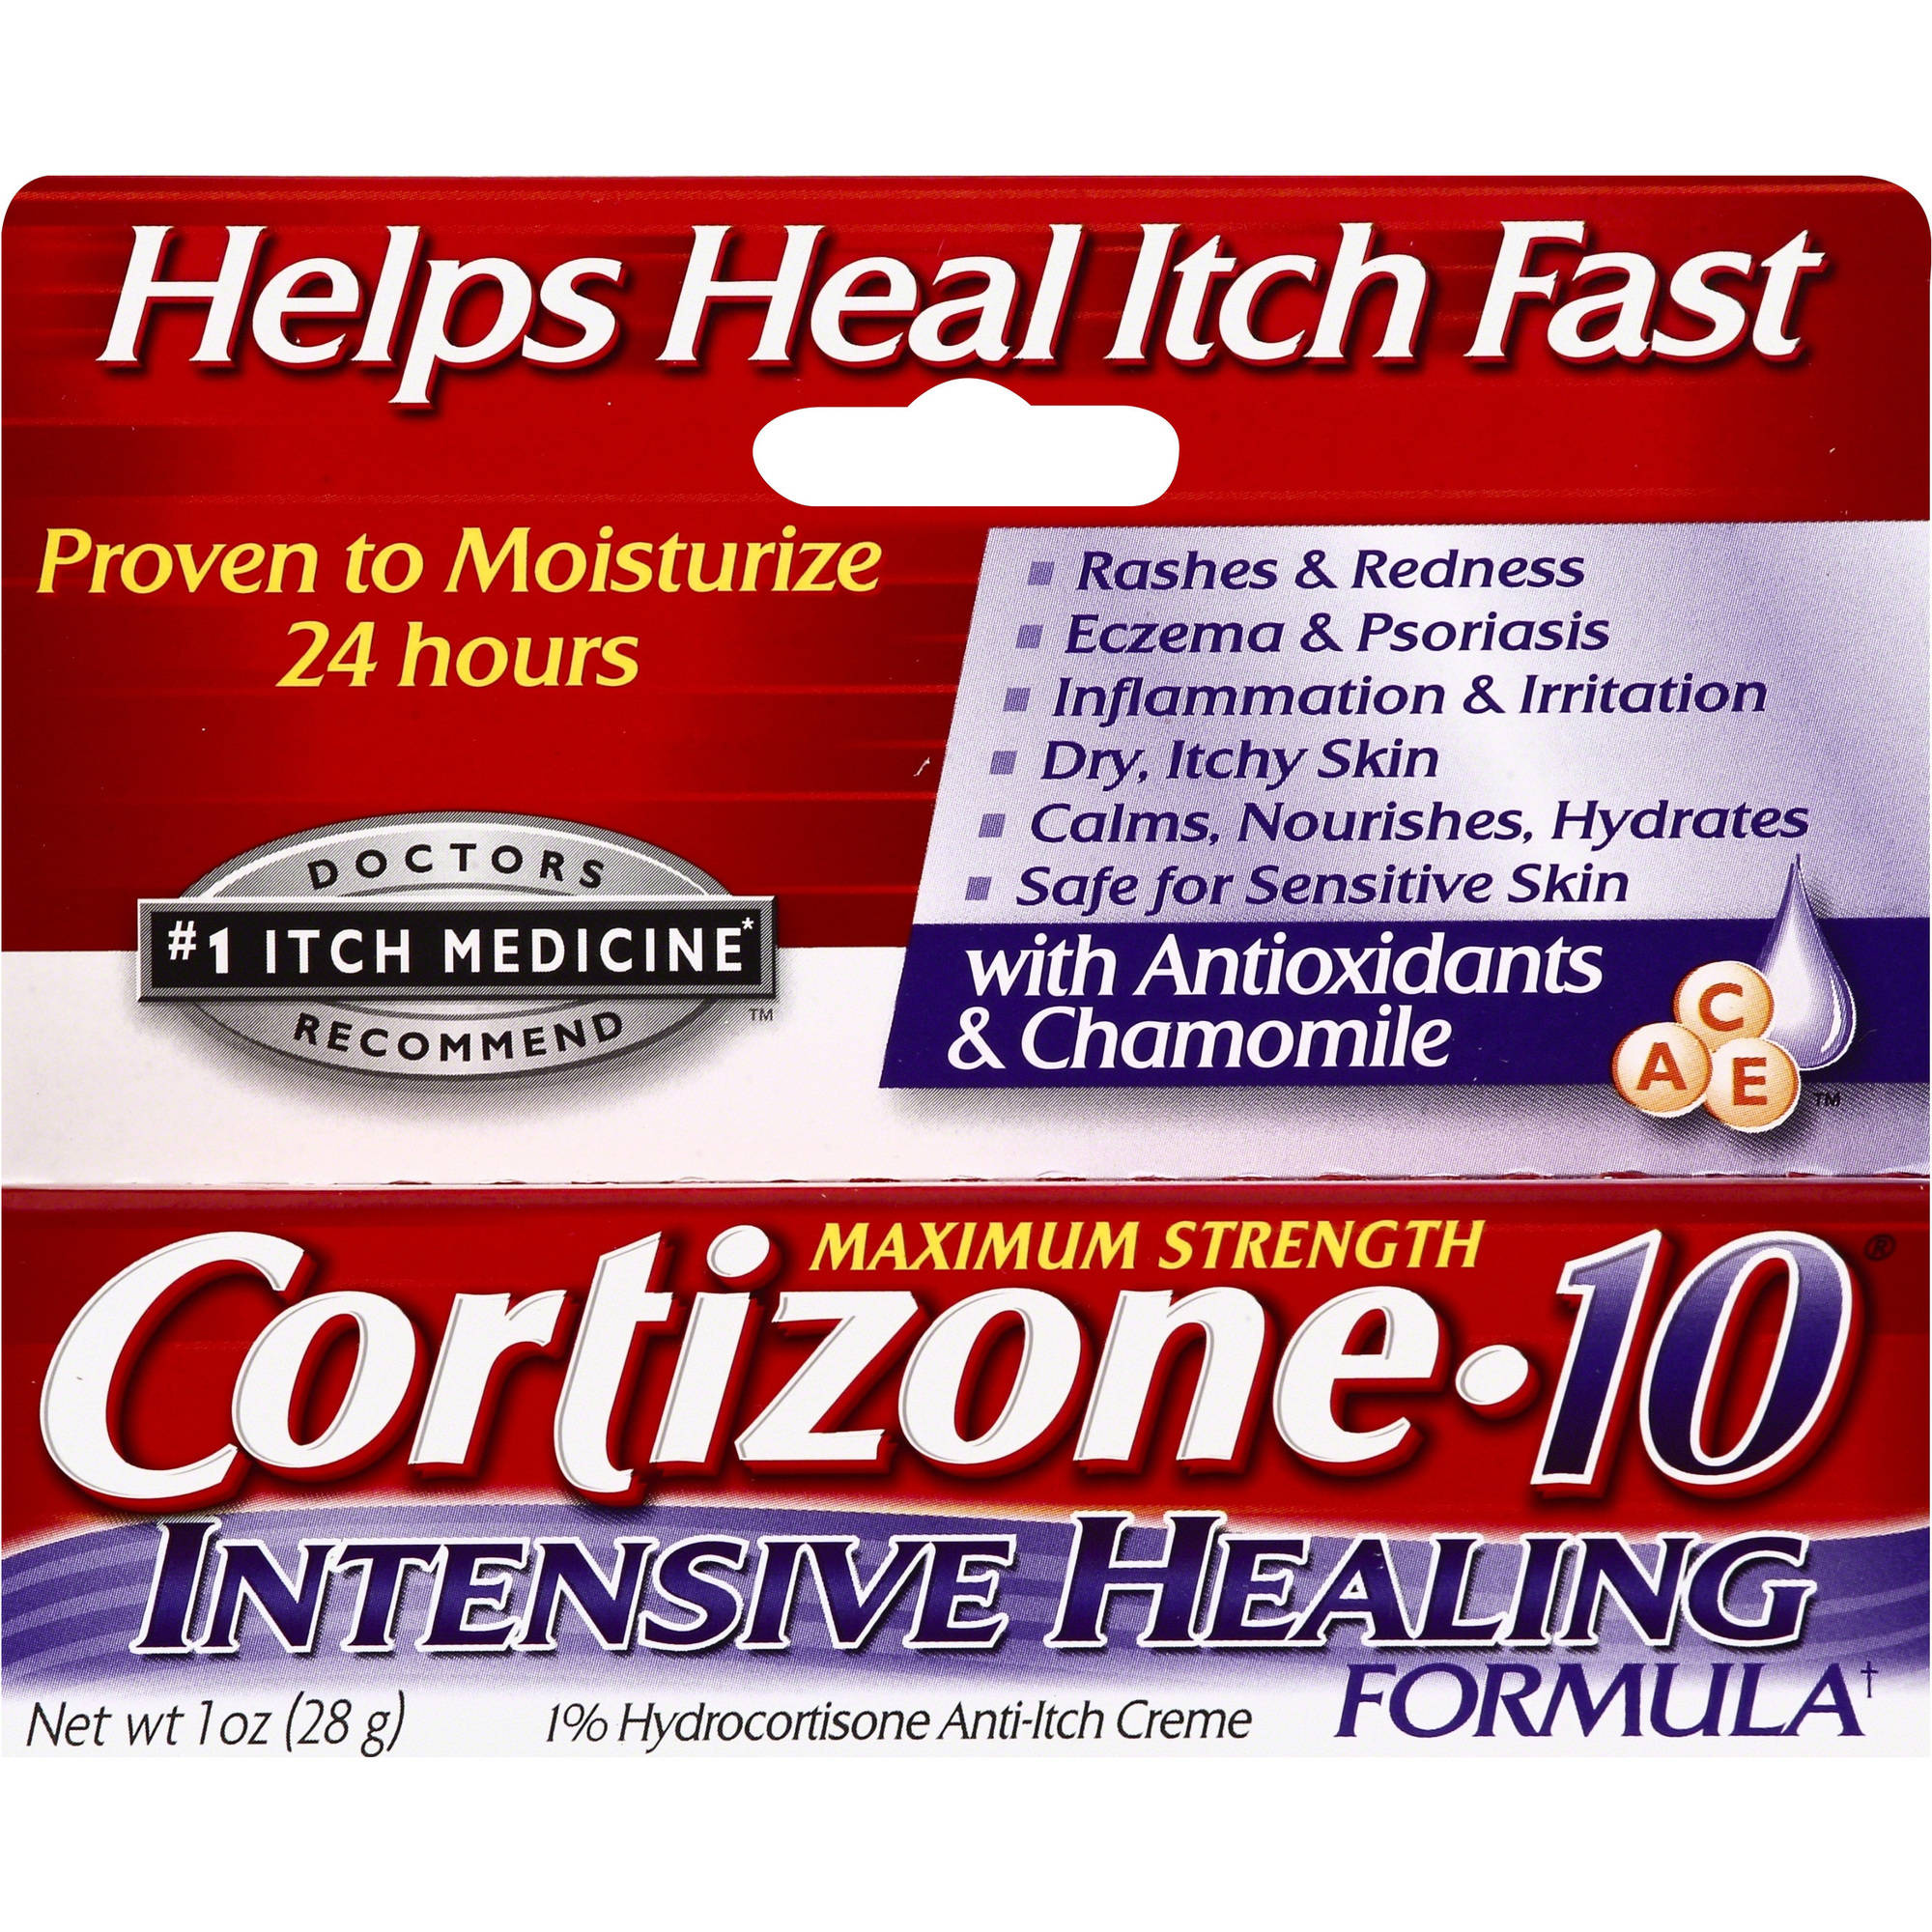 Cortizone Maximum Strength Intensive Healing Formula Creme, 1oz